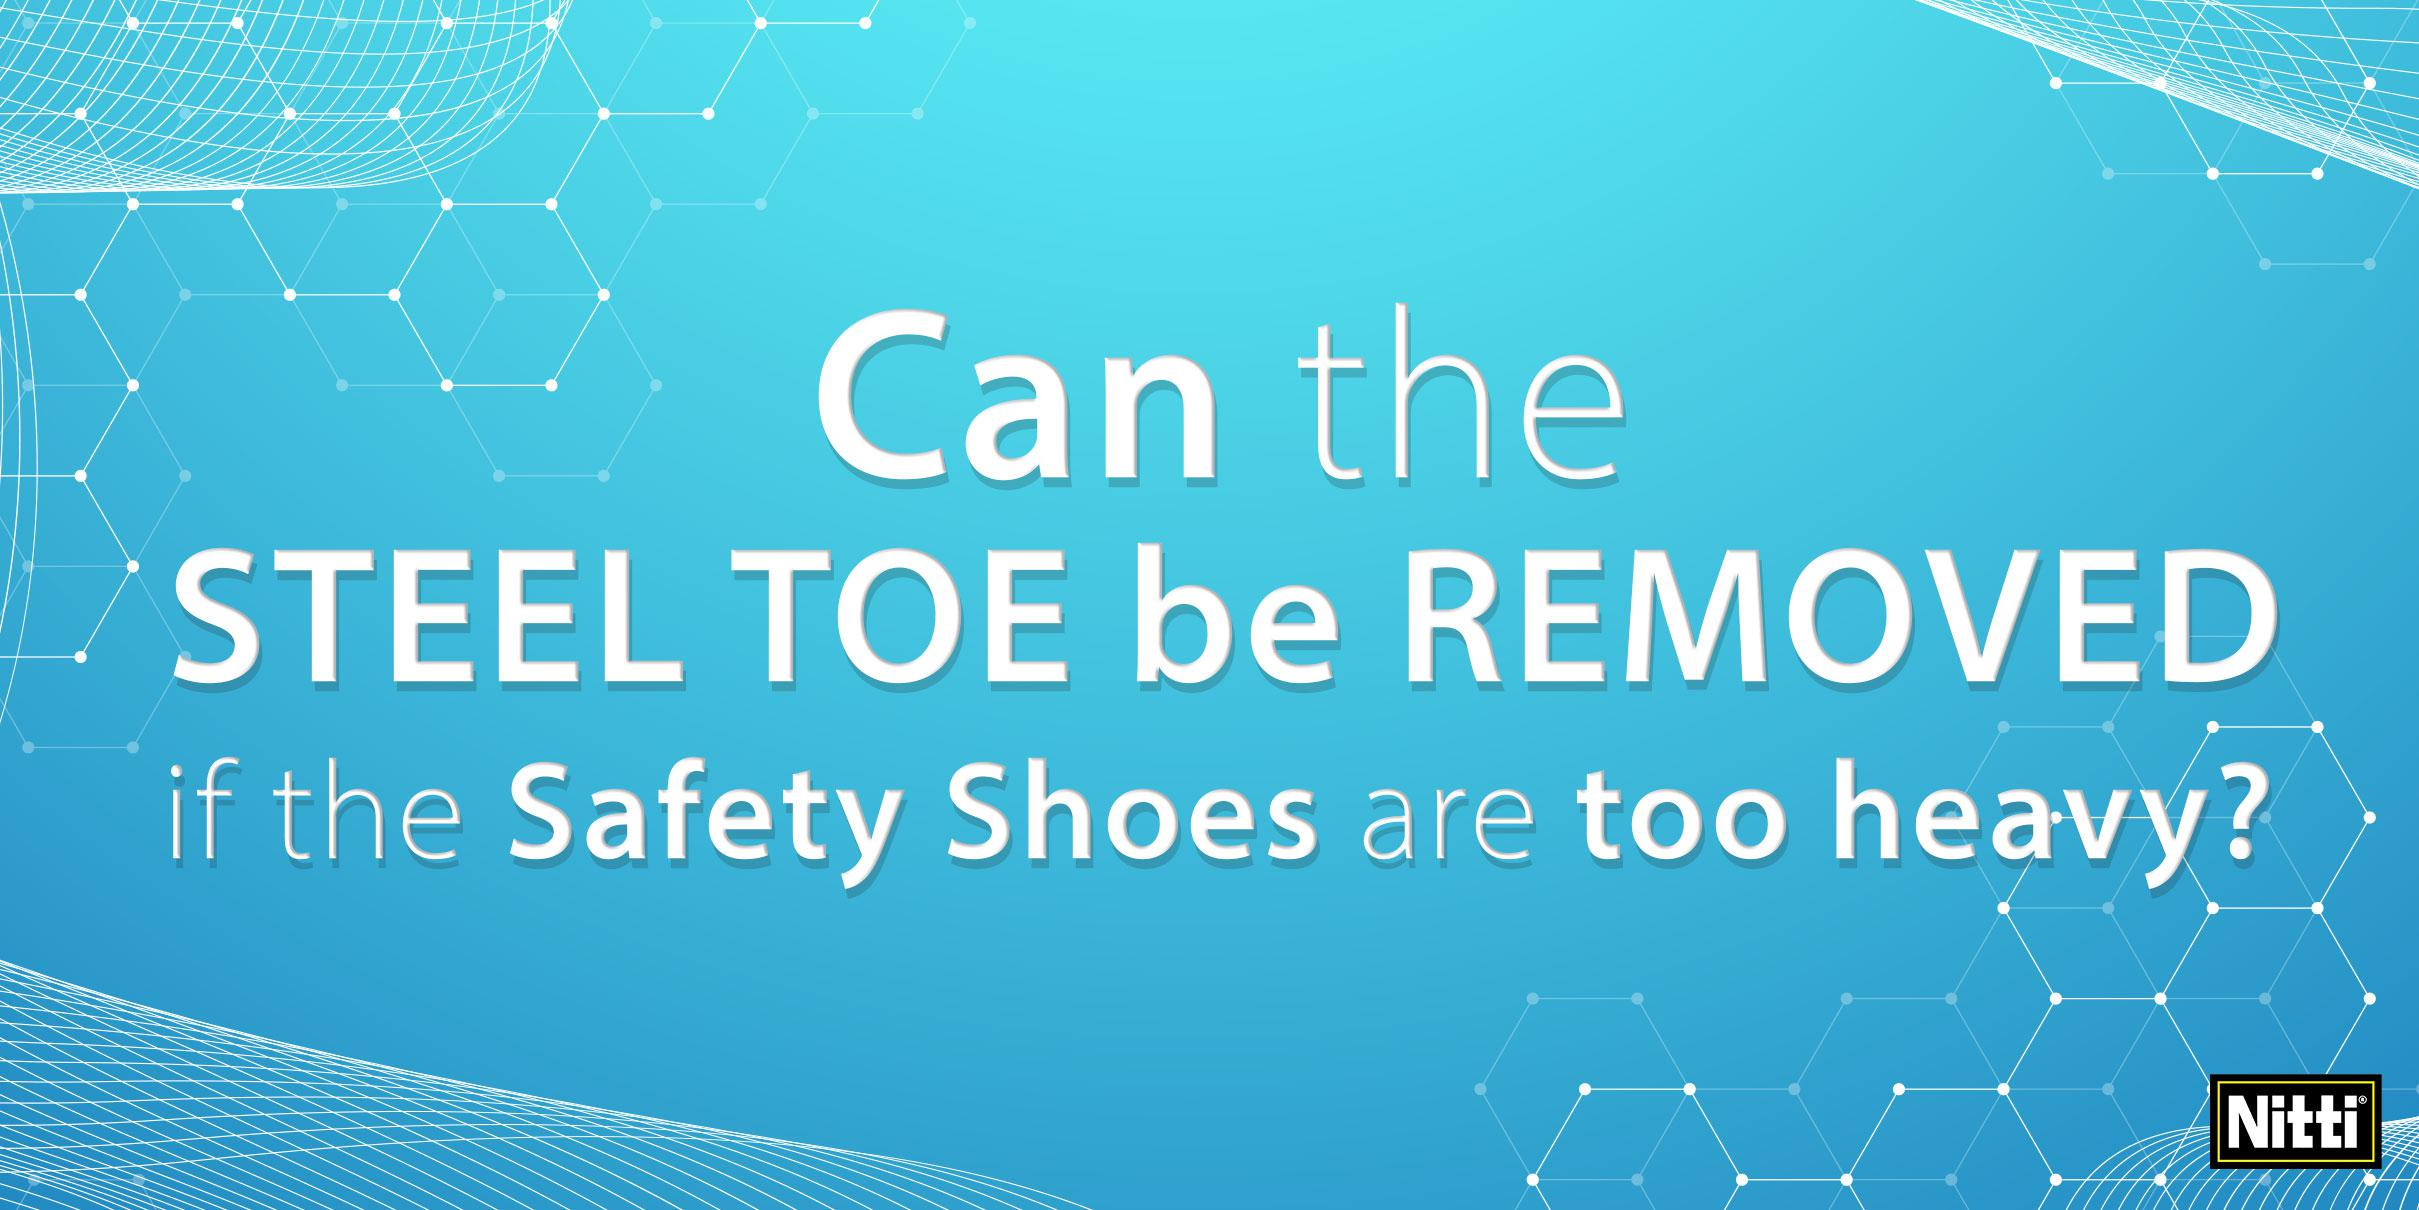 Can the steel toe be removed if the safety shoes are too heavy?